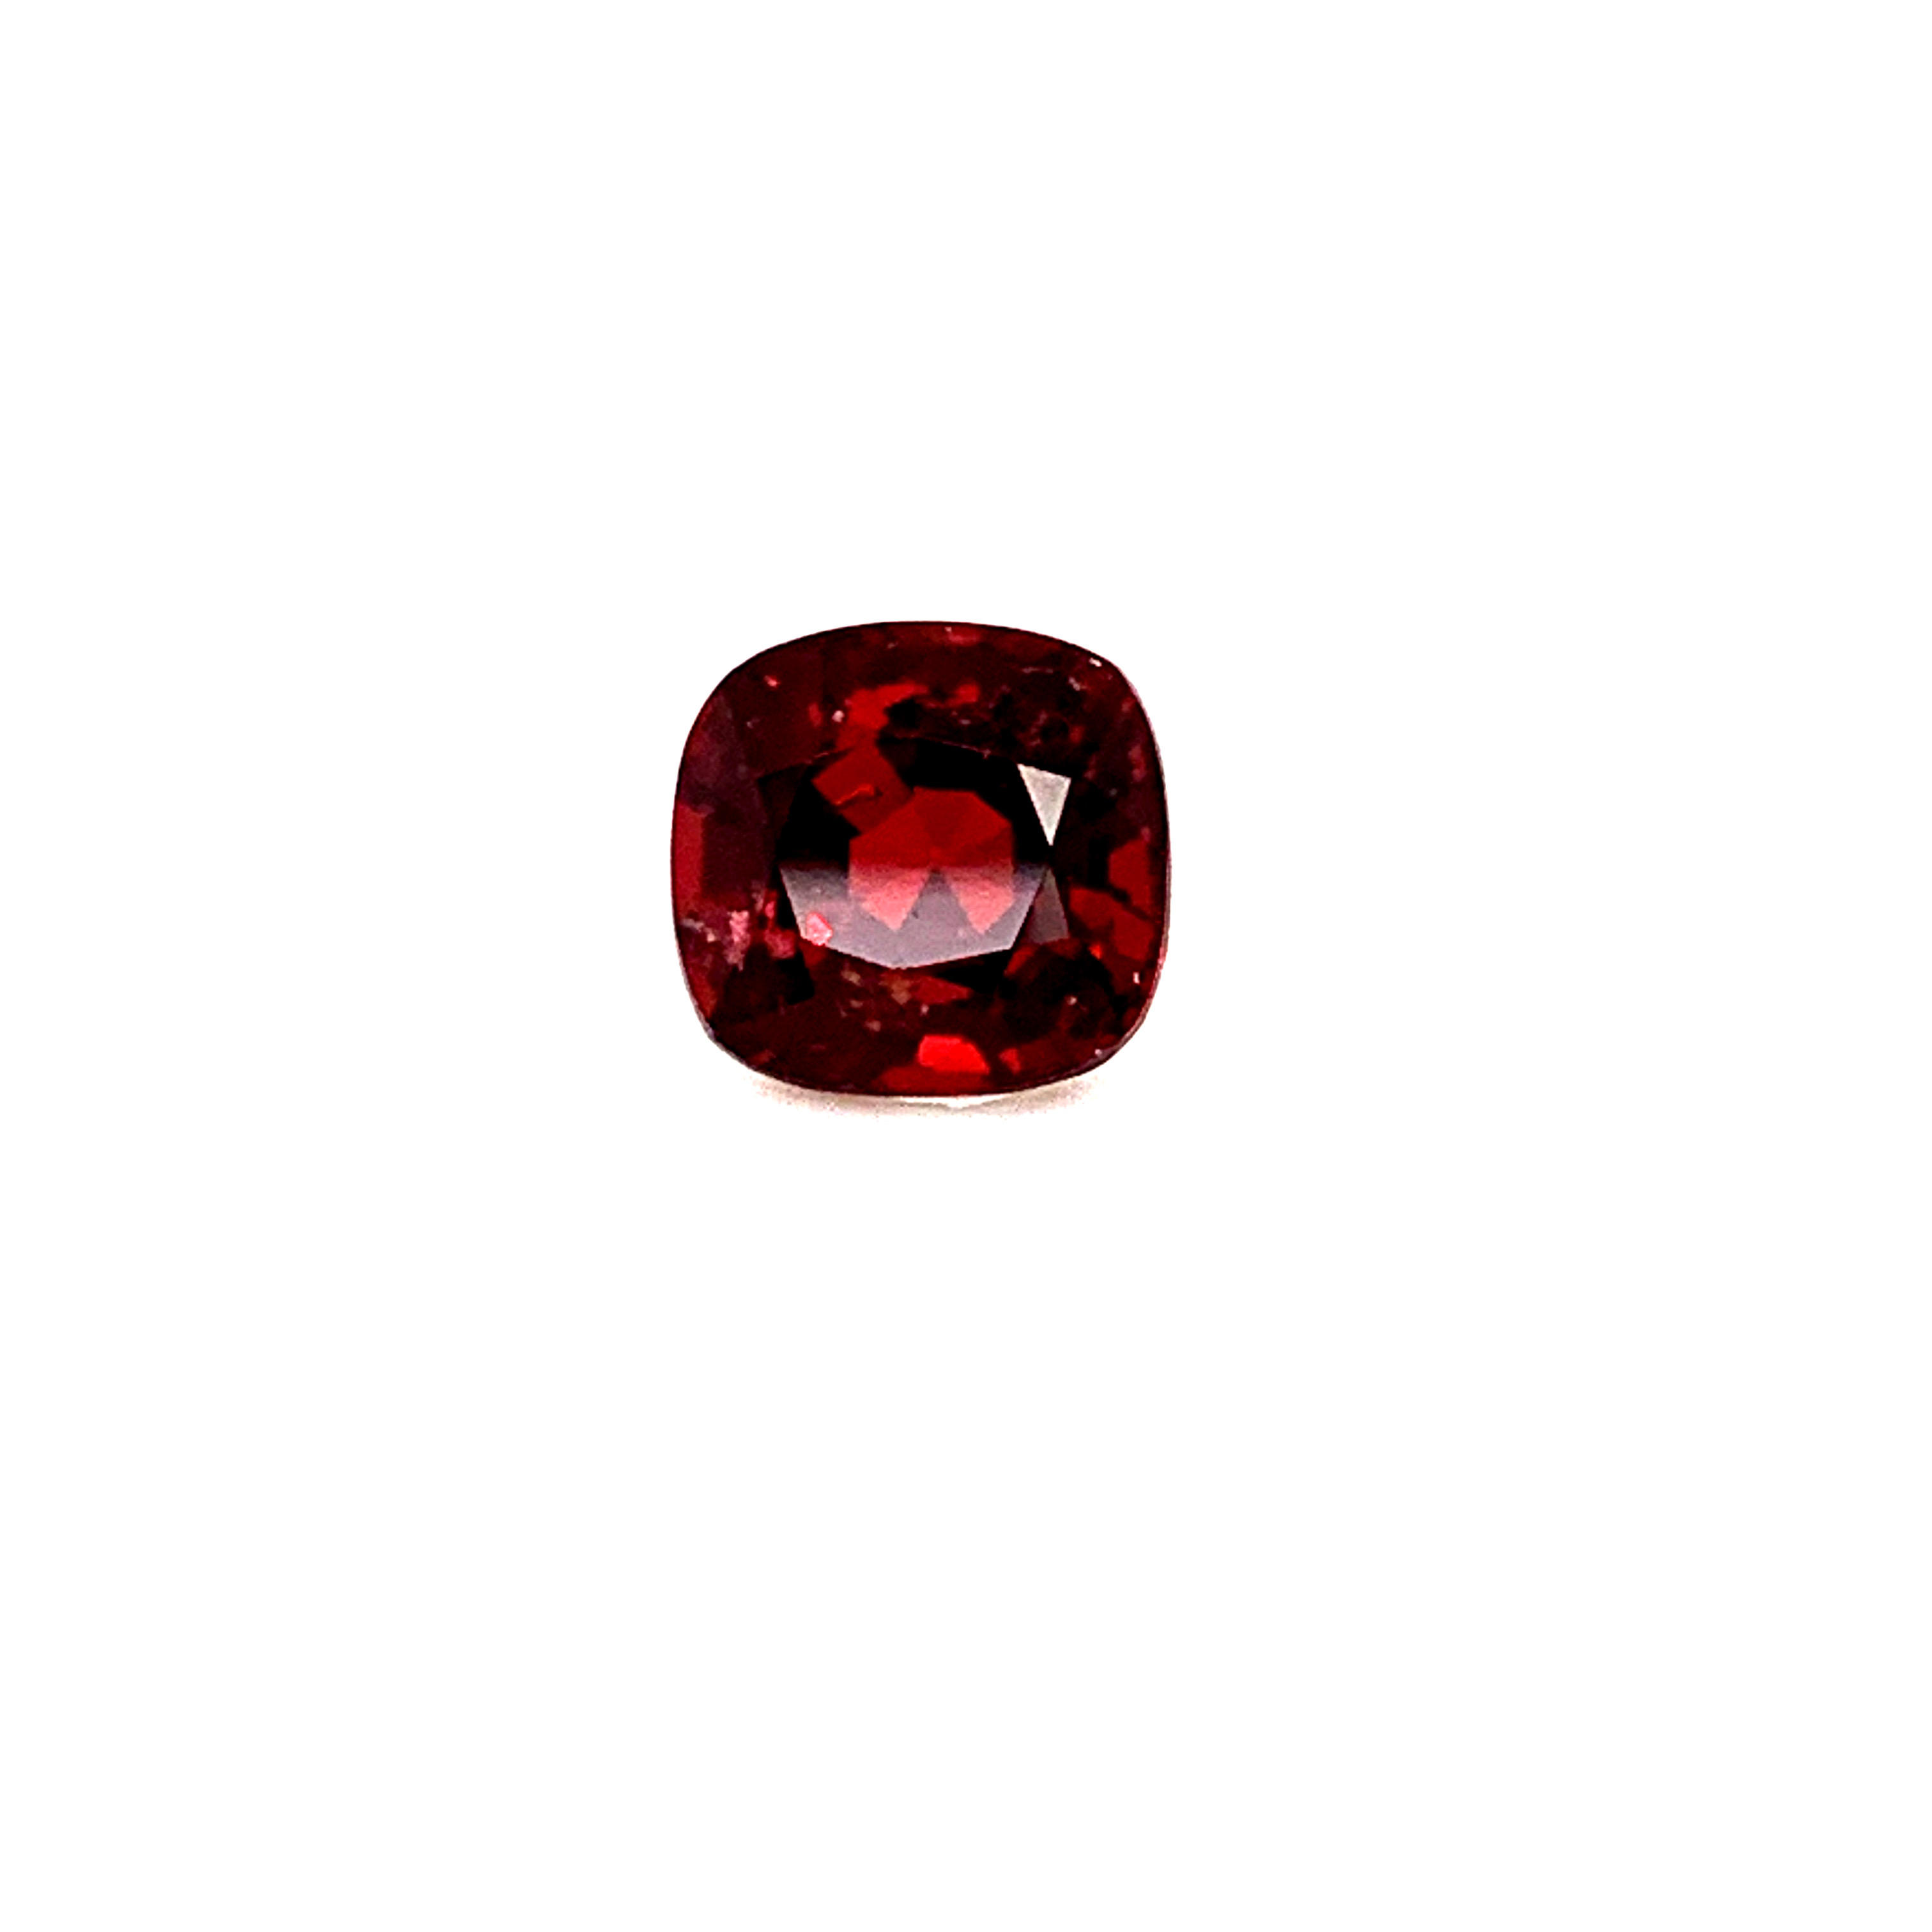 IGI Certified Natural Red Spinel Stone Faceted Cushion Cut Rare Non Heated Gemstone